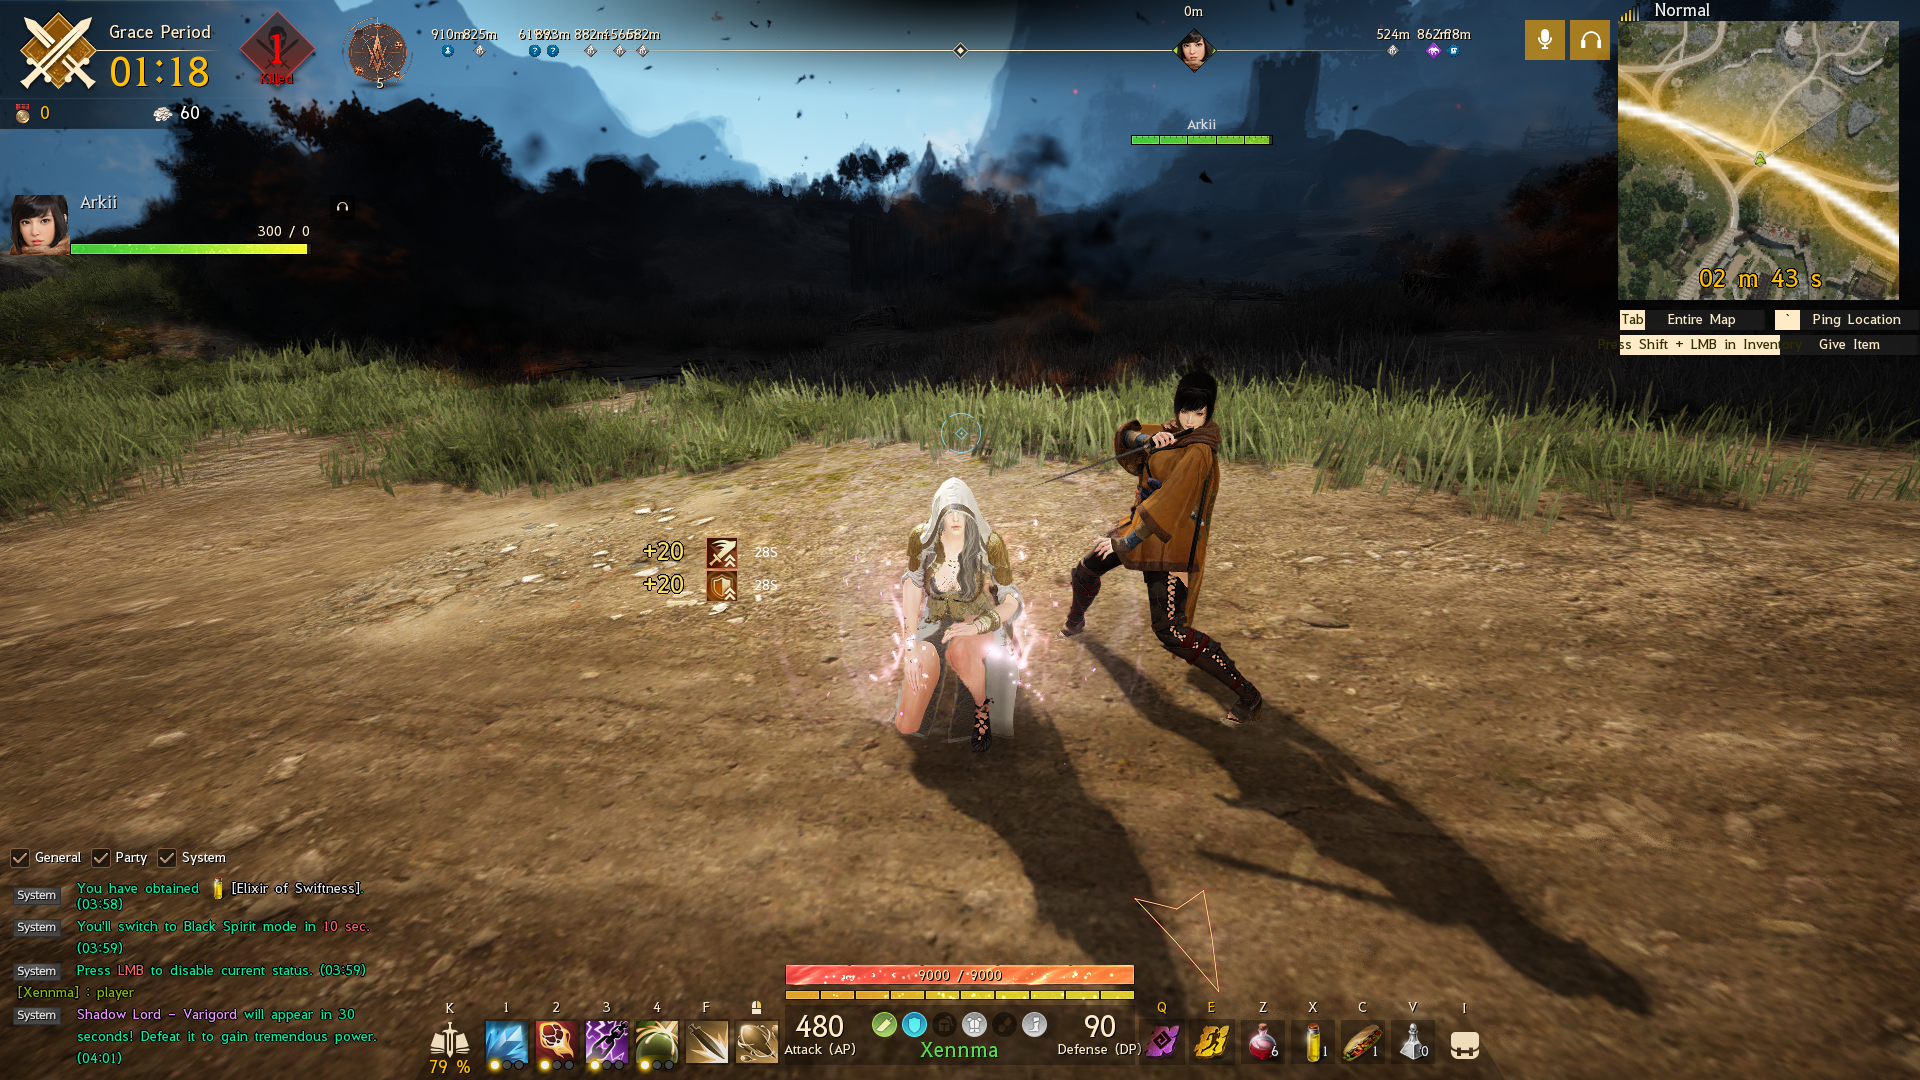 Screenshot of Xennma and Arkii on North America server in Team Mode.